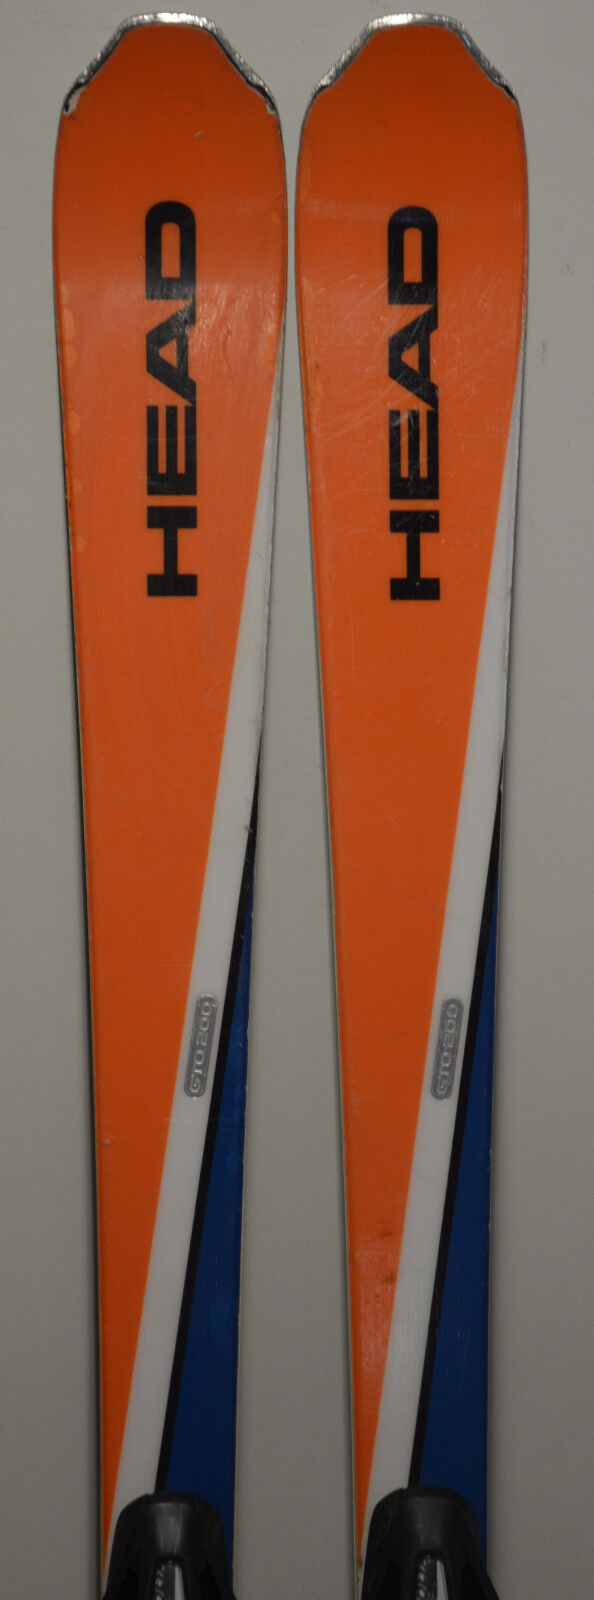 Ski used  parabolic HEAD GTO 78 11 16-66 7 8in  large discount